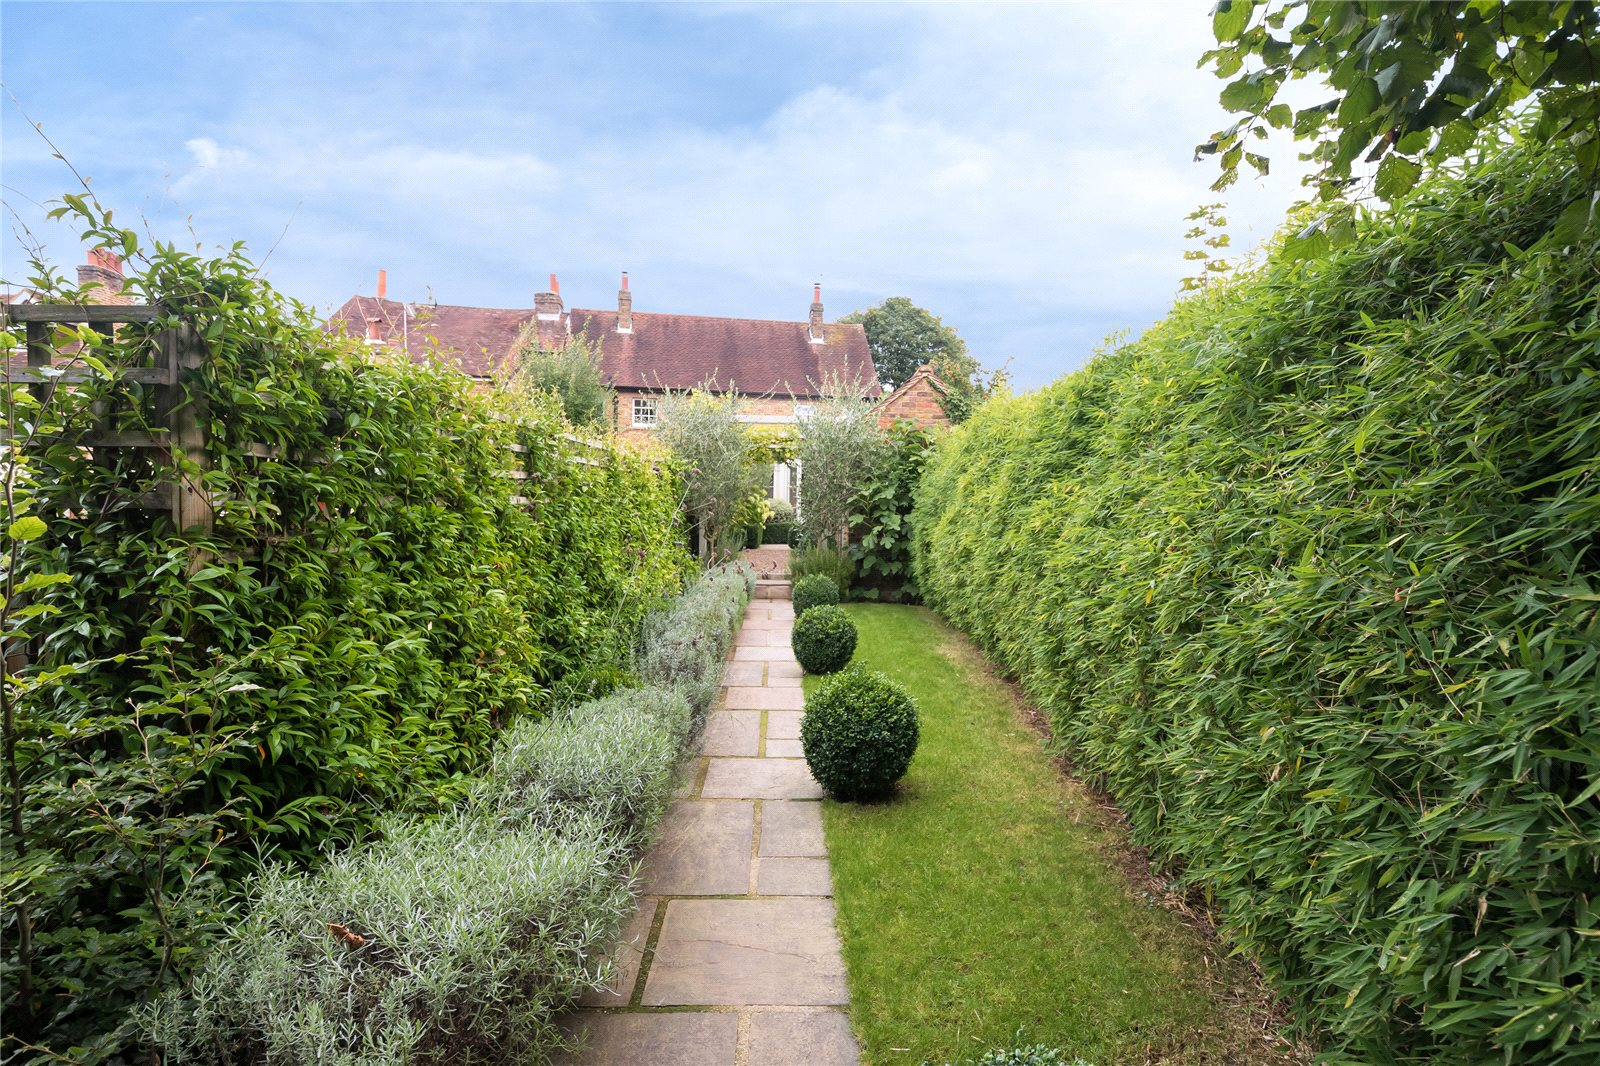 Additional photo for property listing at Village Road, Denham Village, Buckinghamshire, UB9 Buckinghamshire, East Of England, Engeland